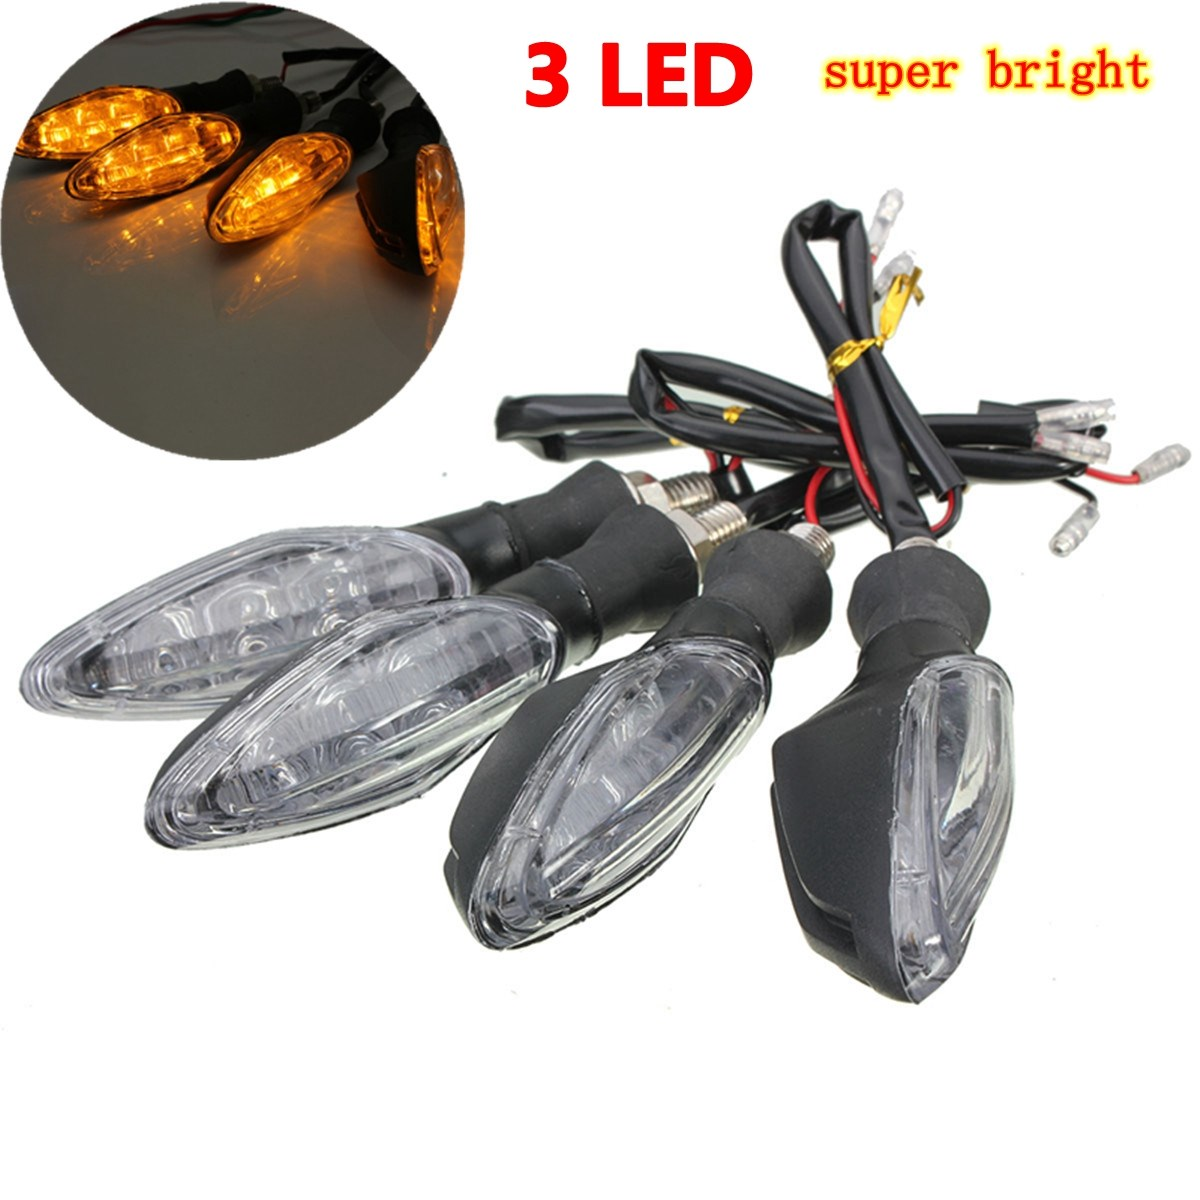 4PCS 12V Universal Black Motorcycle 3 LED Turn Signal Indicator Light Lamp Yellow For Honda/Yamaha/Suzuki/Kawasaki